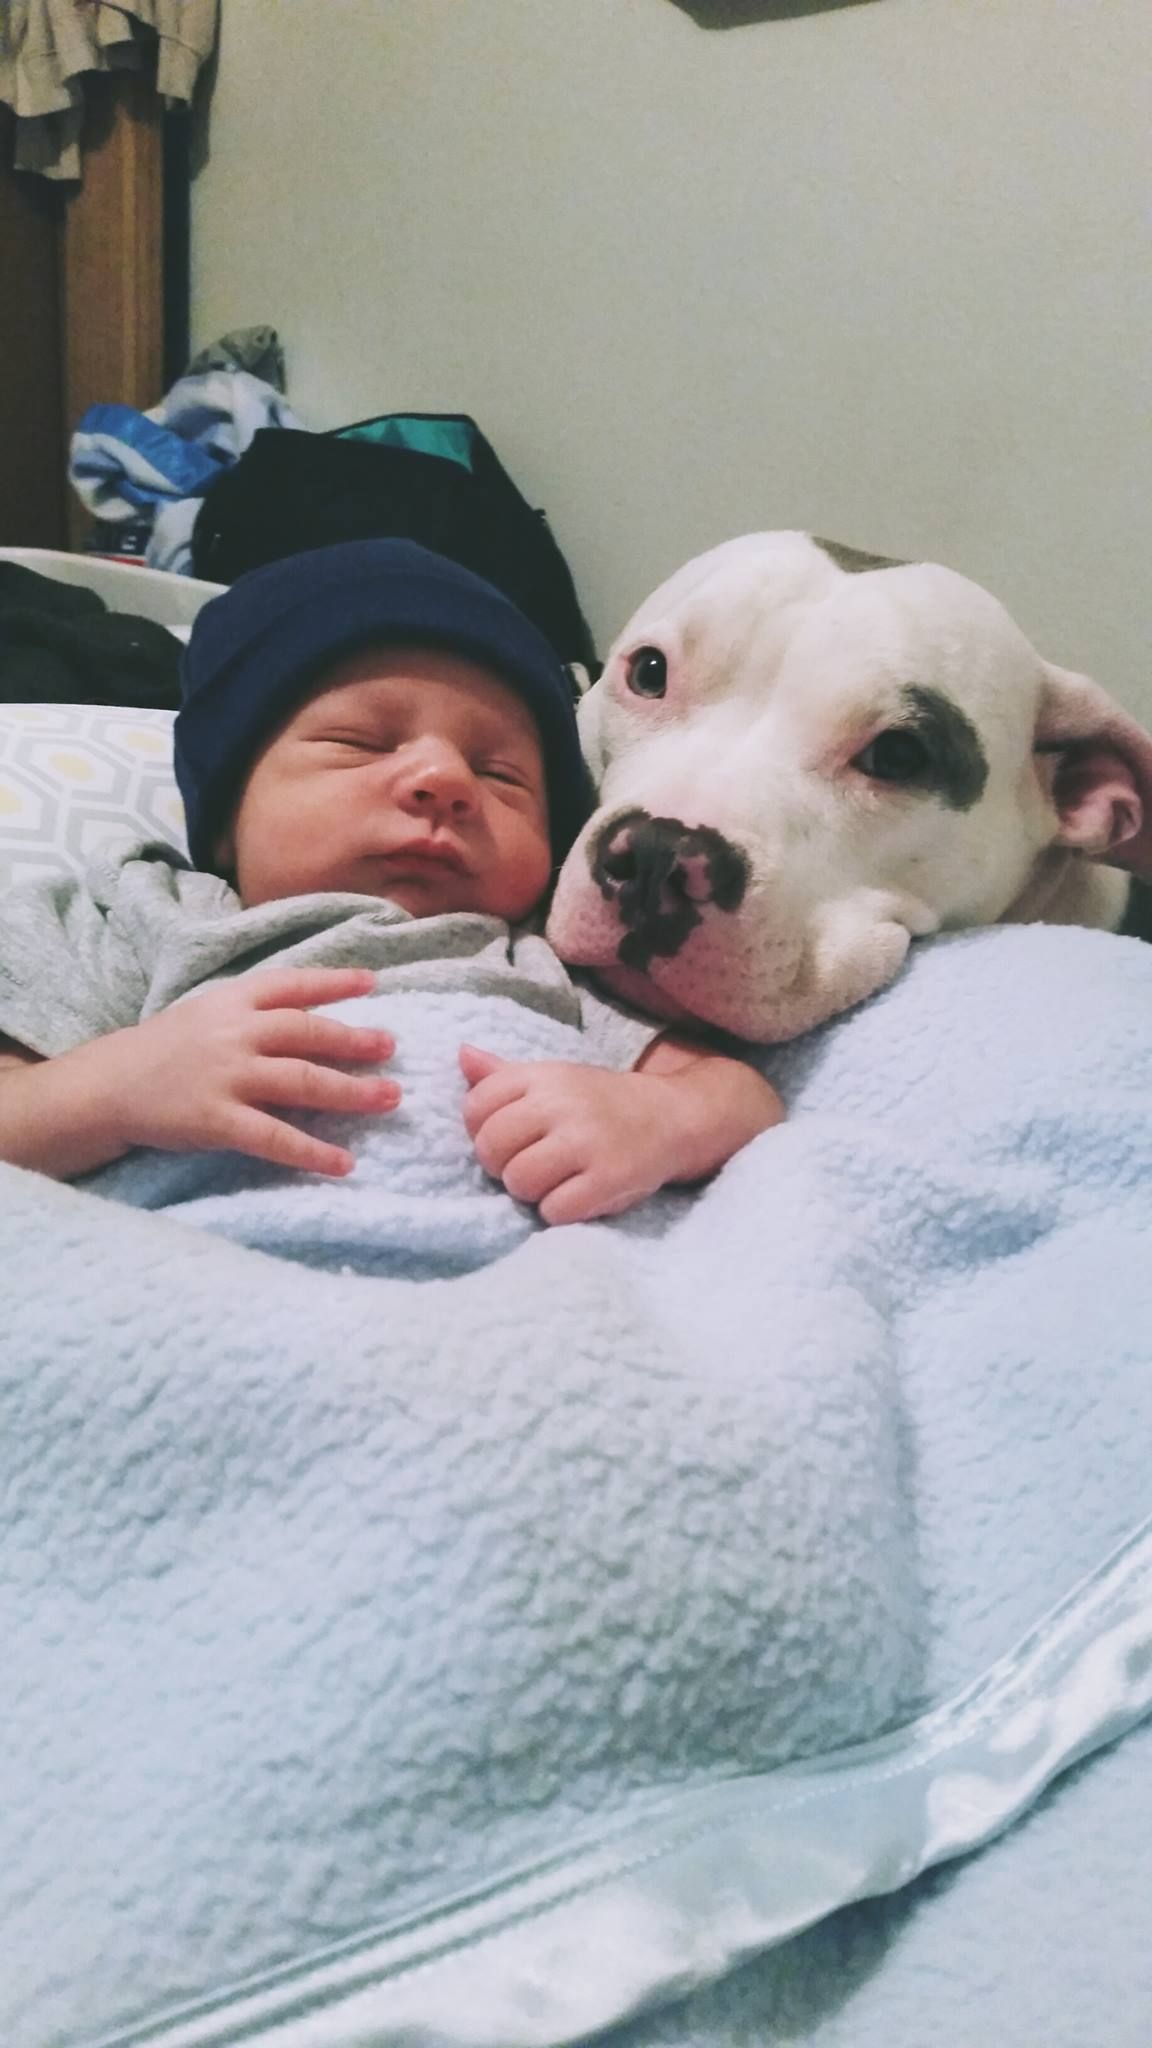 I Let A Pit Bull Near My Baby This Is What Happened Cute Little Dogs PitbullPitbull NamesSmiling